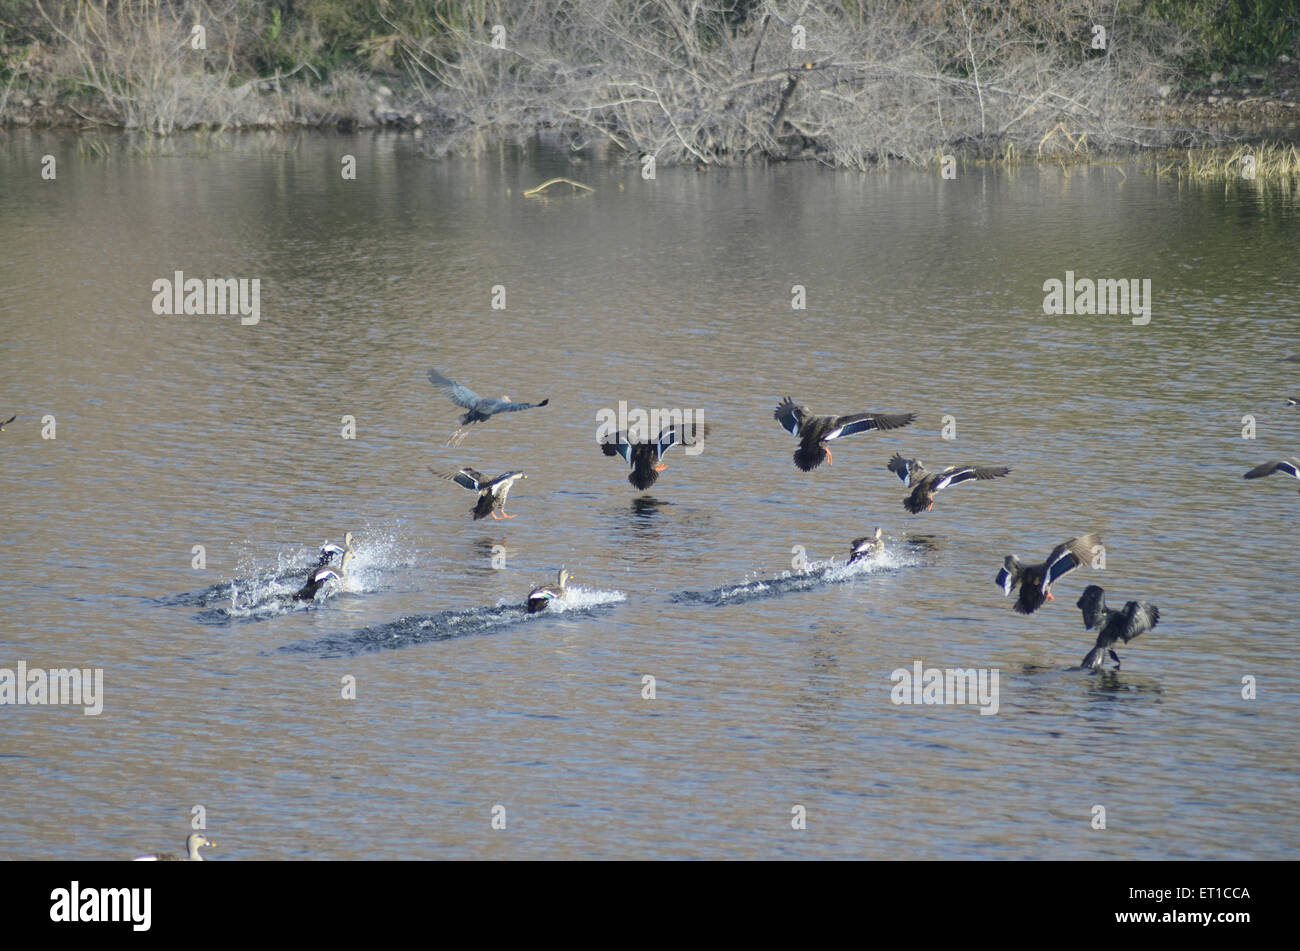 Birds flying over pond at Jodhpur Rajasthan India - Stock Image